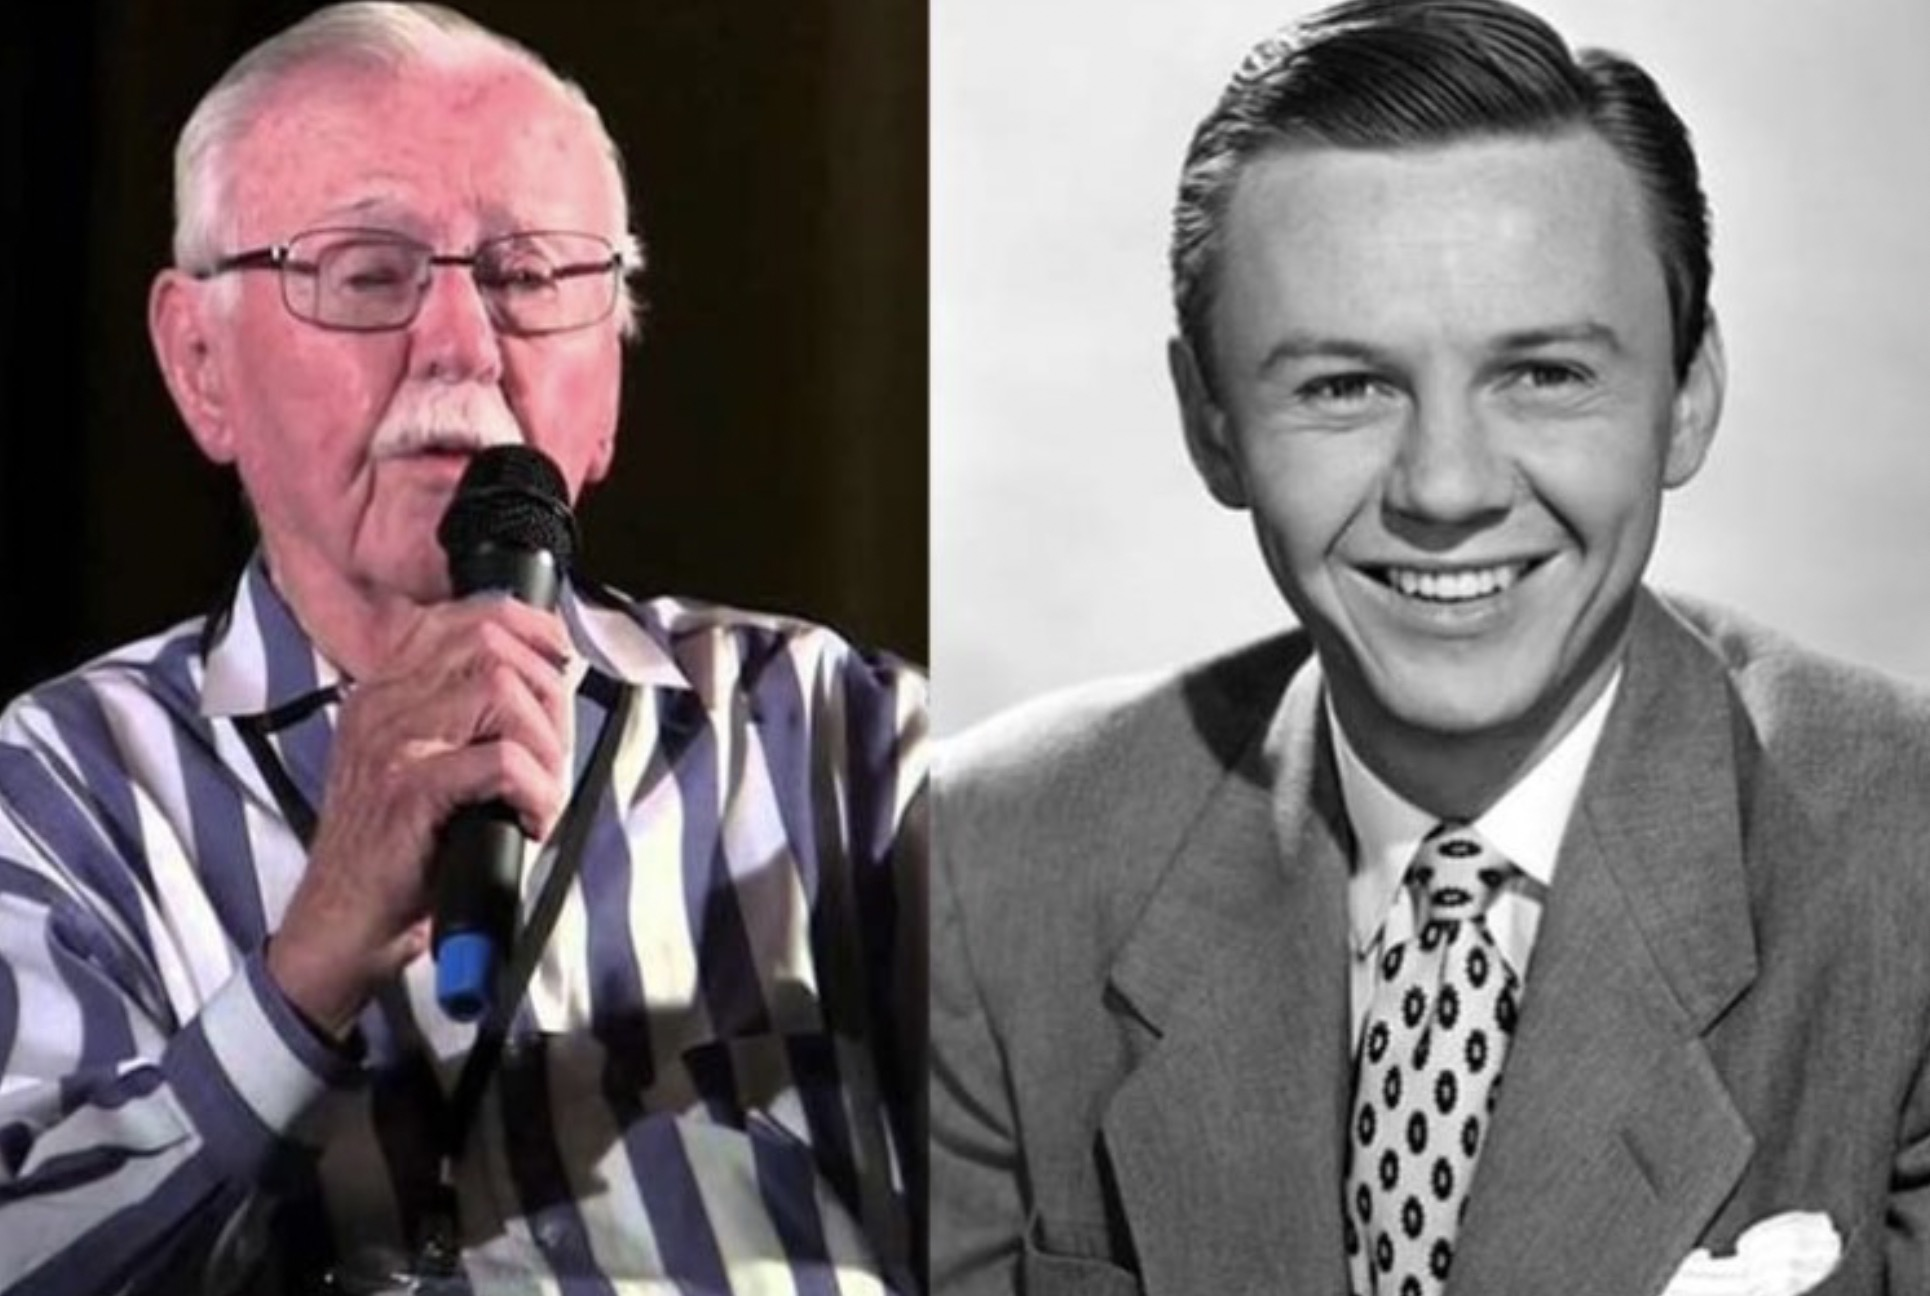 JIMMY LYDON 94 YEARS OLD